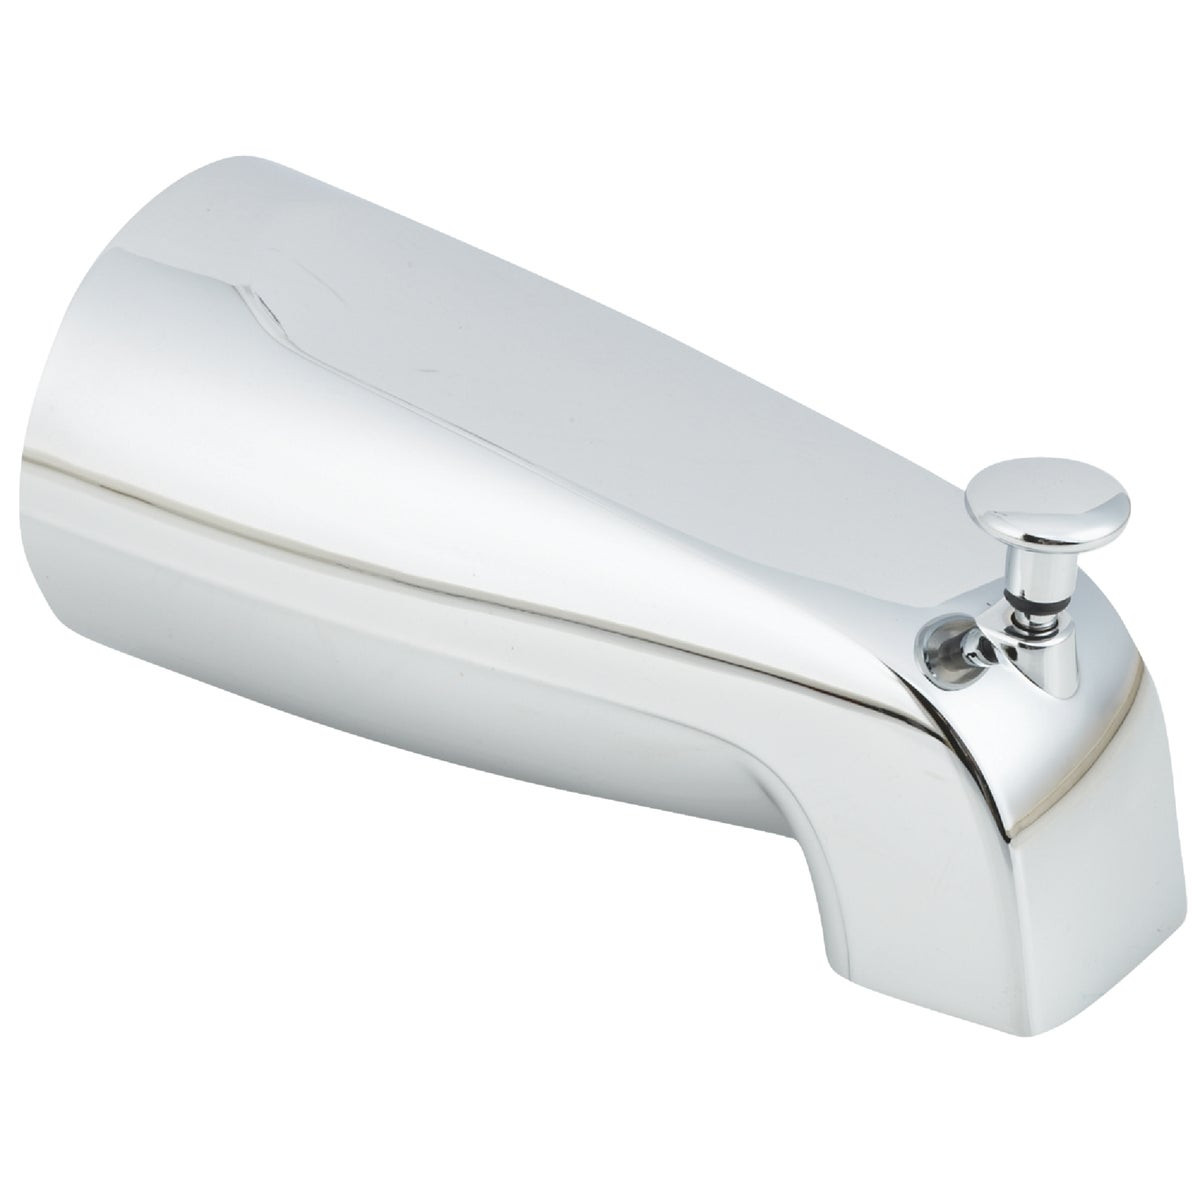 BATH SPOUT W/DIVERTER - 450685 by Do it Best